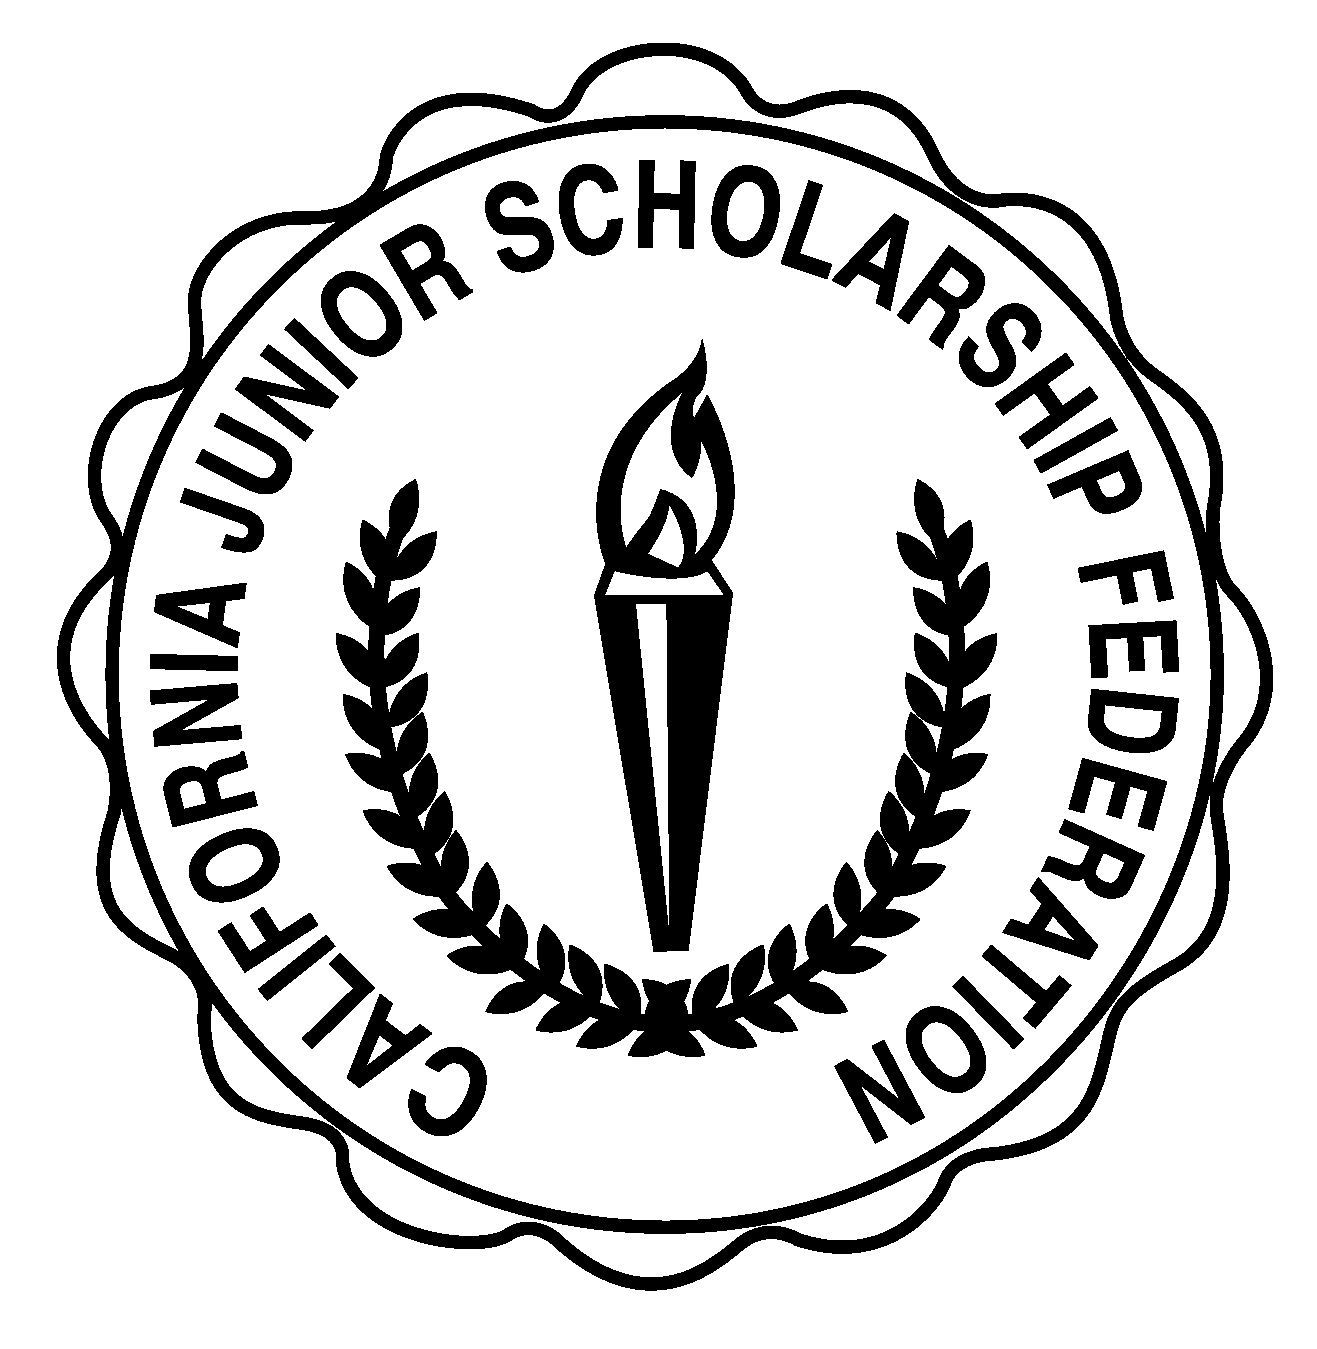 Scholarship drawing line. New csf chapter for